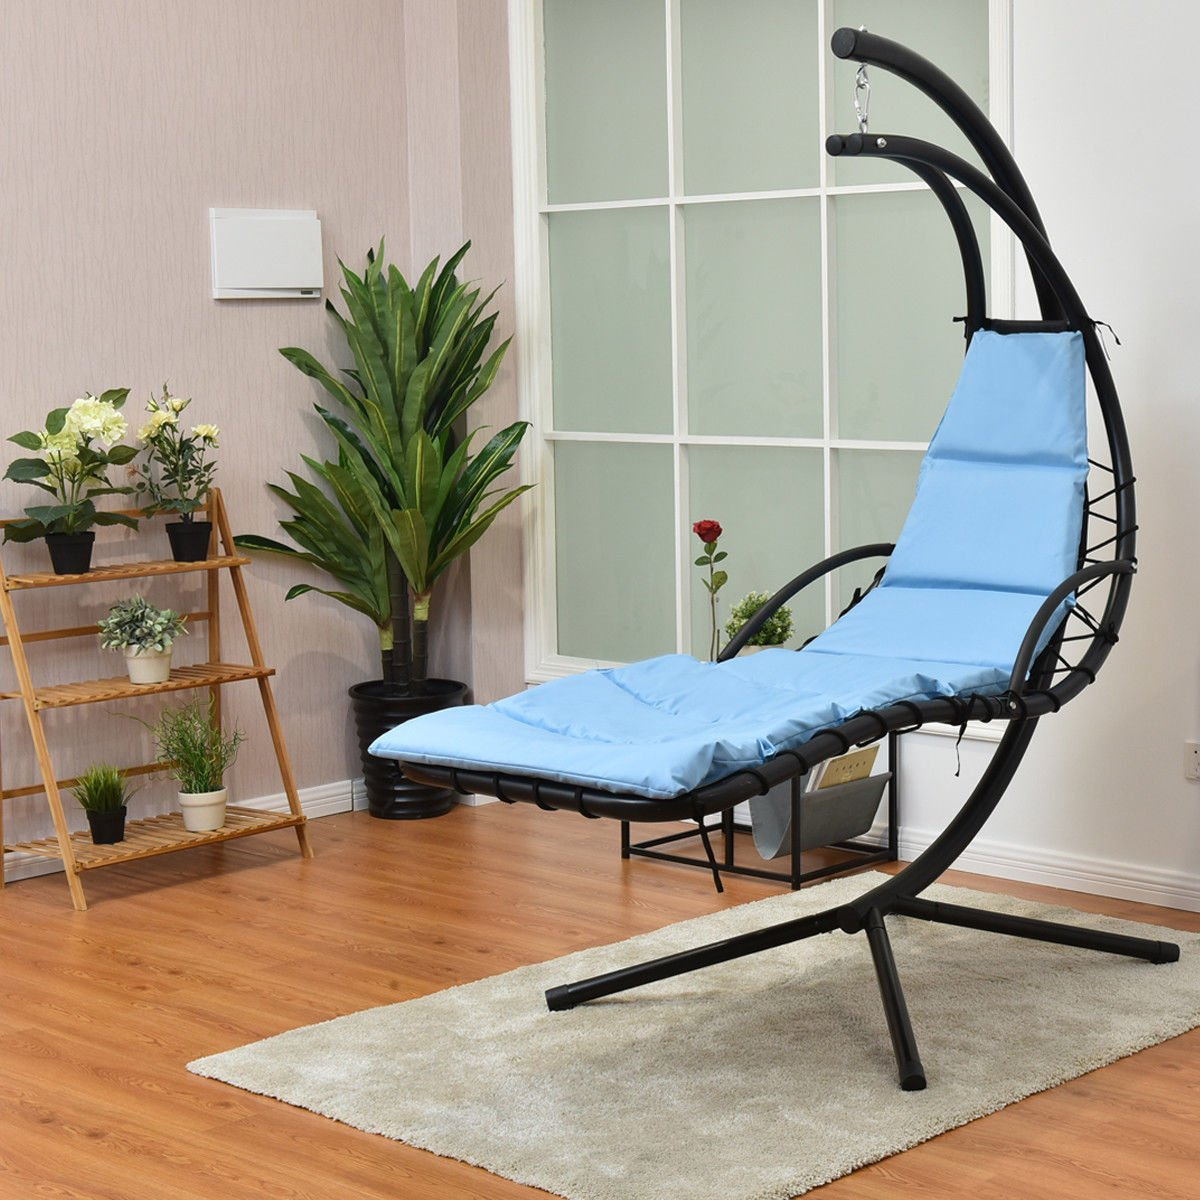 Giantex Hanging Chaise Lounger Chair Arc Stand Air Porch Swing Hammock Chair with Canopy Umbrella (Light Blue)